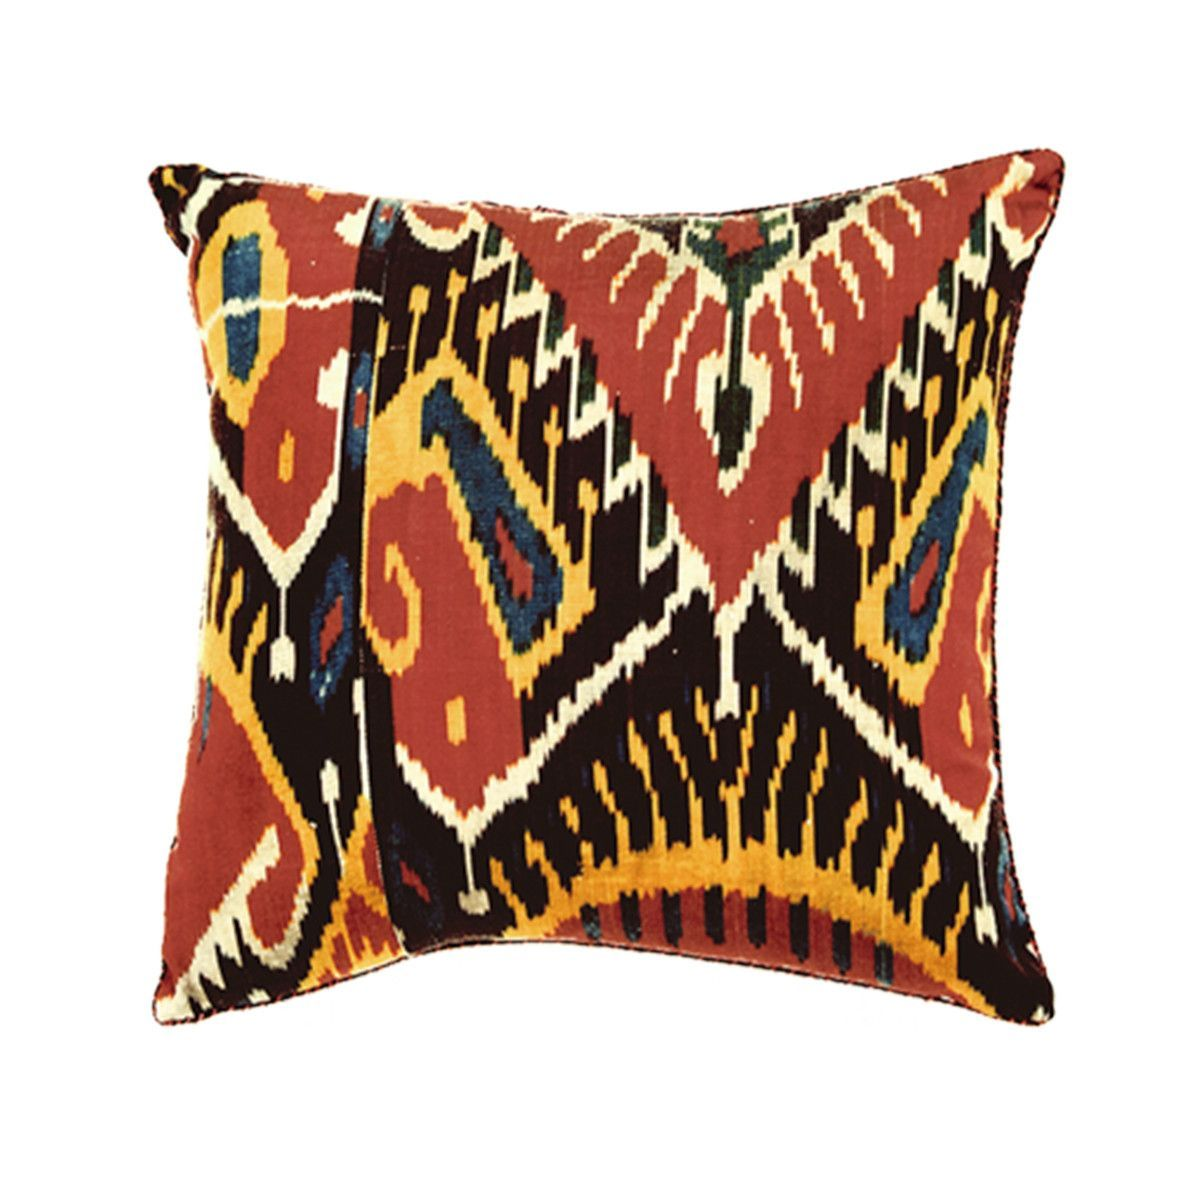 Fp Vendor Madeline Weinrib Dashwood Ikat Pillow Ikat Pillows